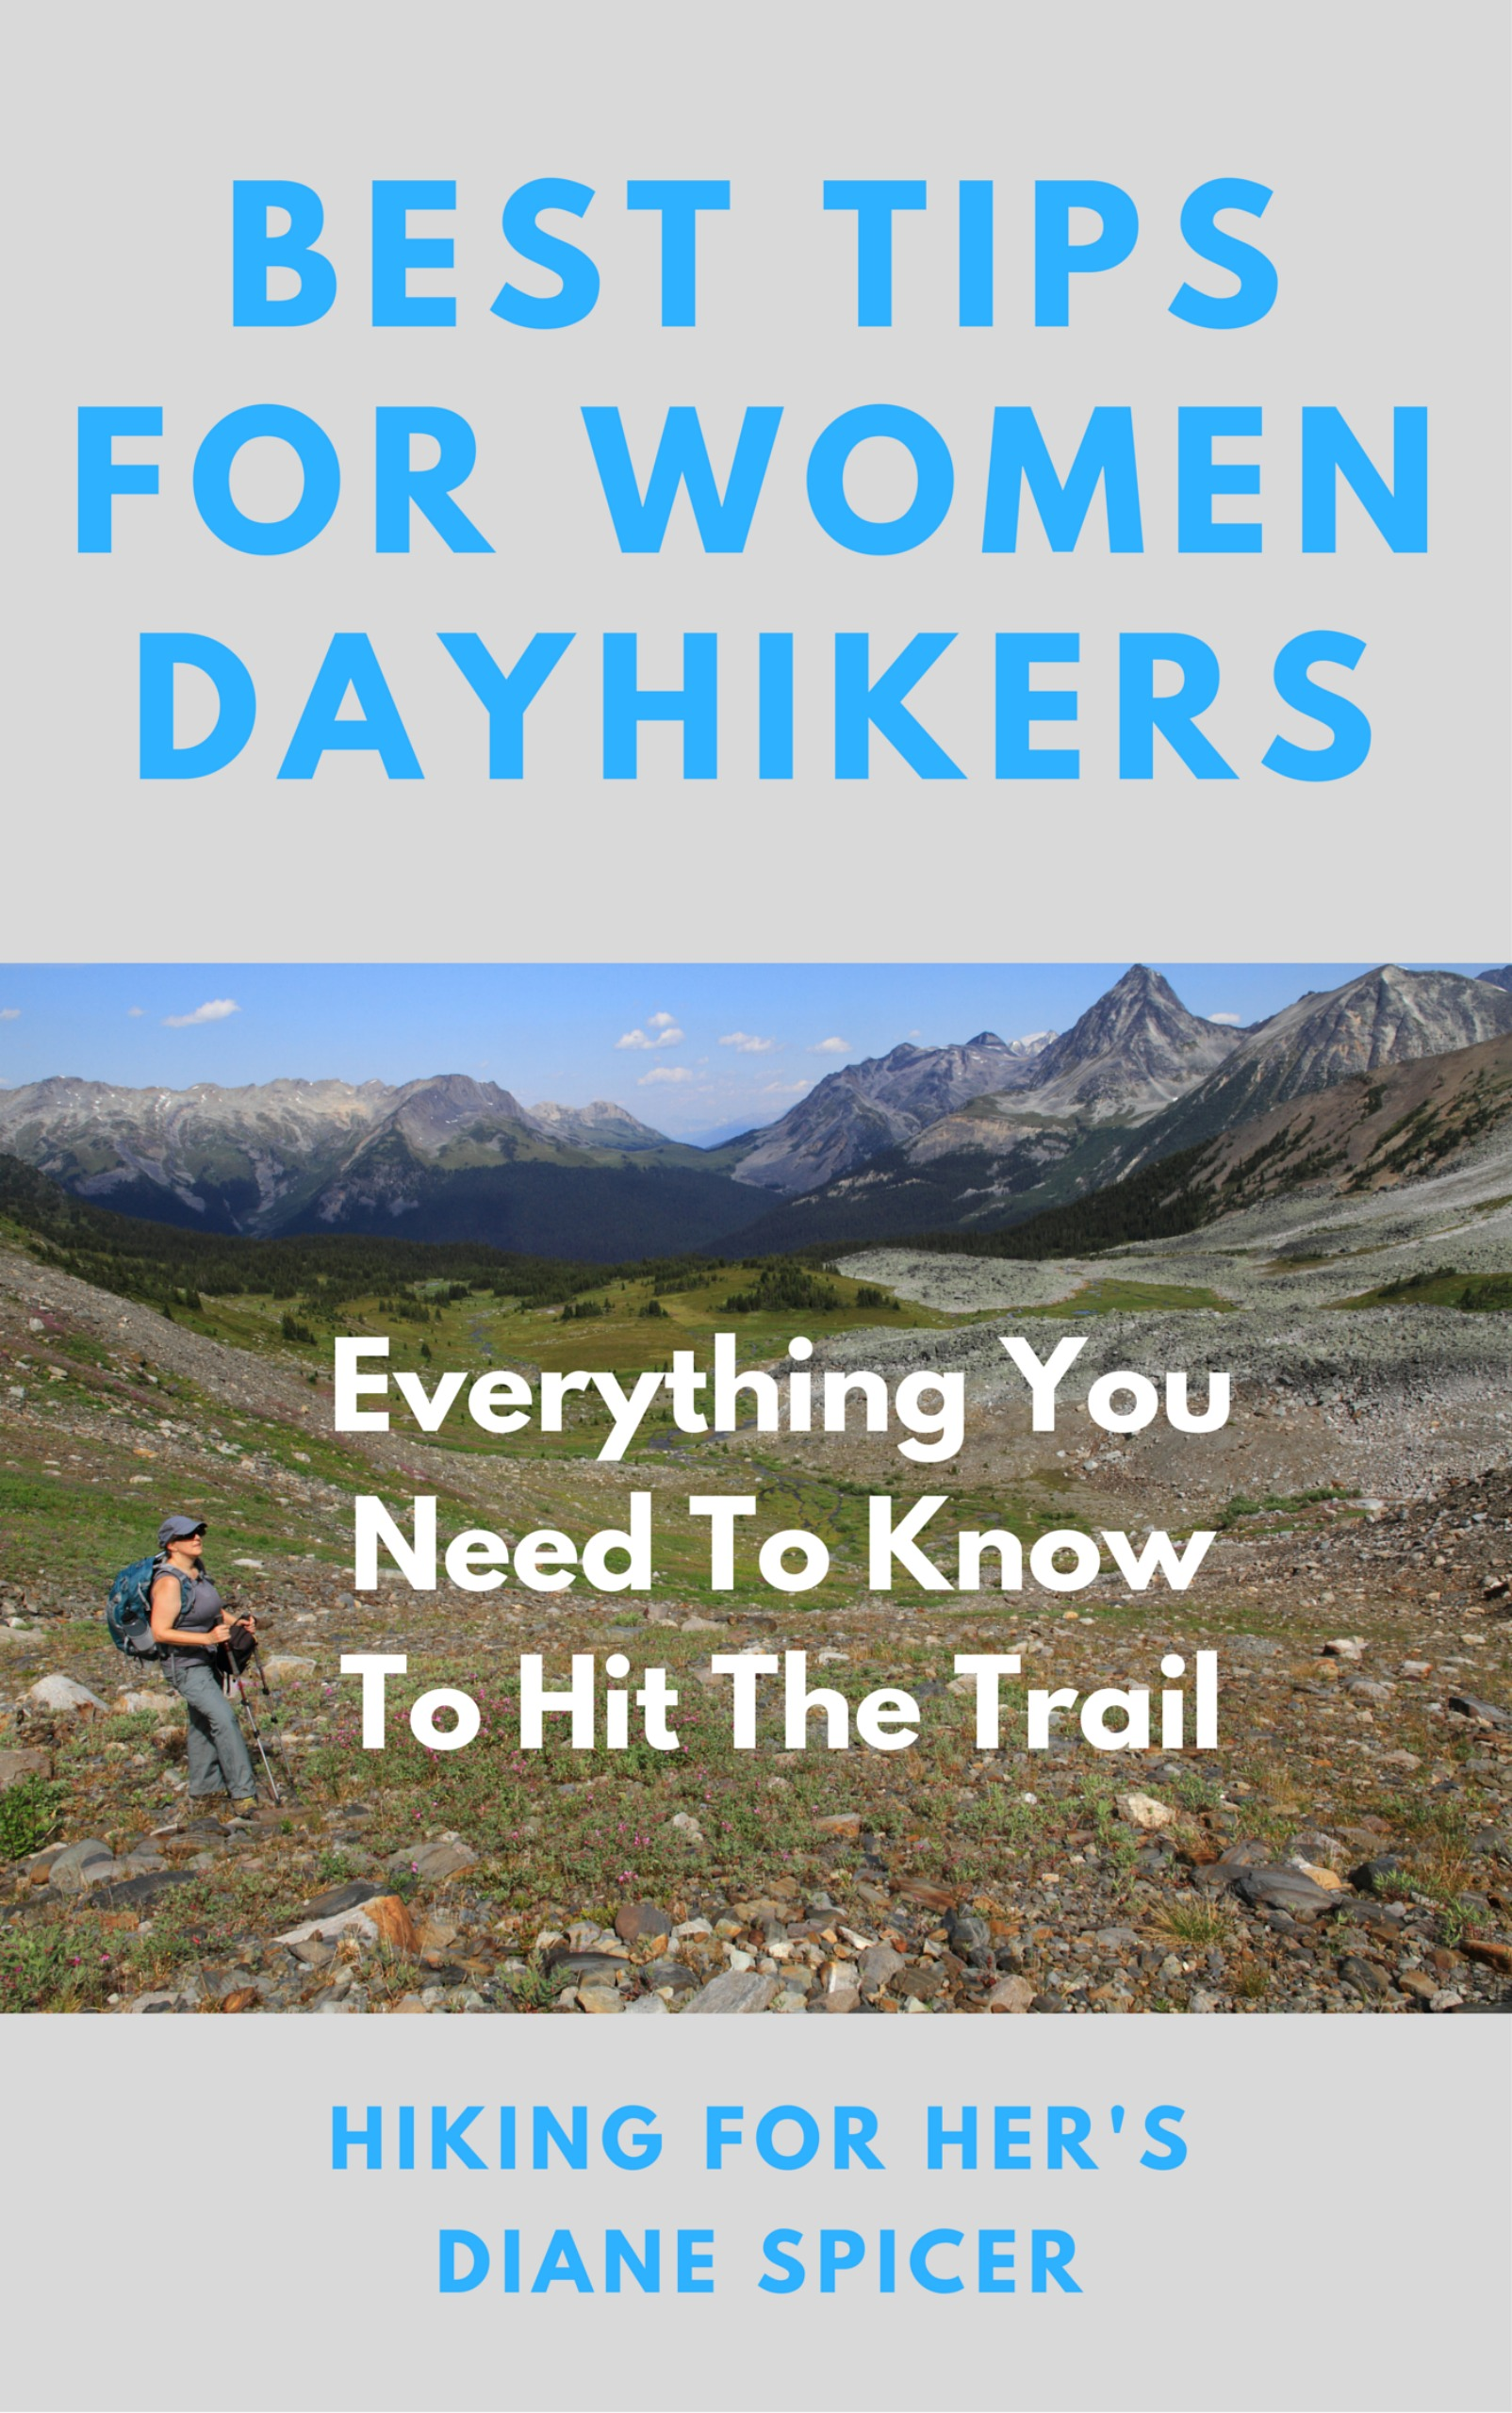 Best Tips For Women Dayhikers - a new book full of ways to make your day hikes more comfortable, safer, and lots more fun.